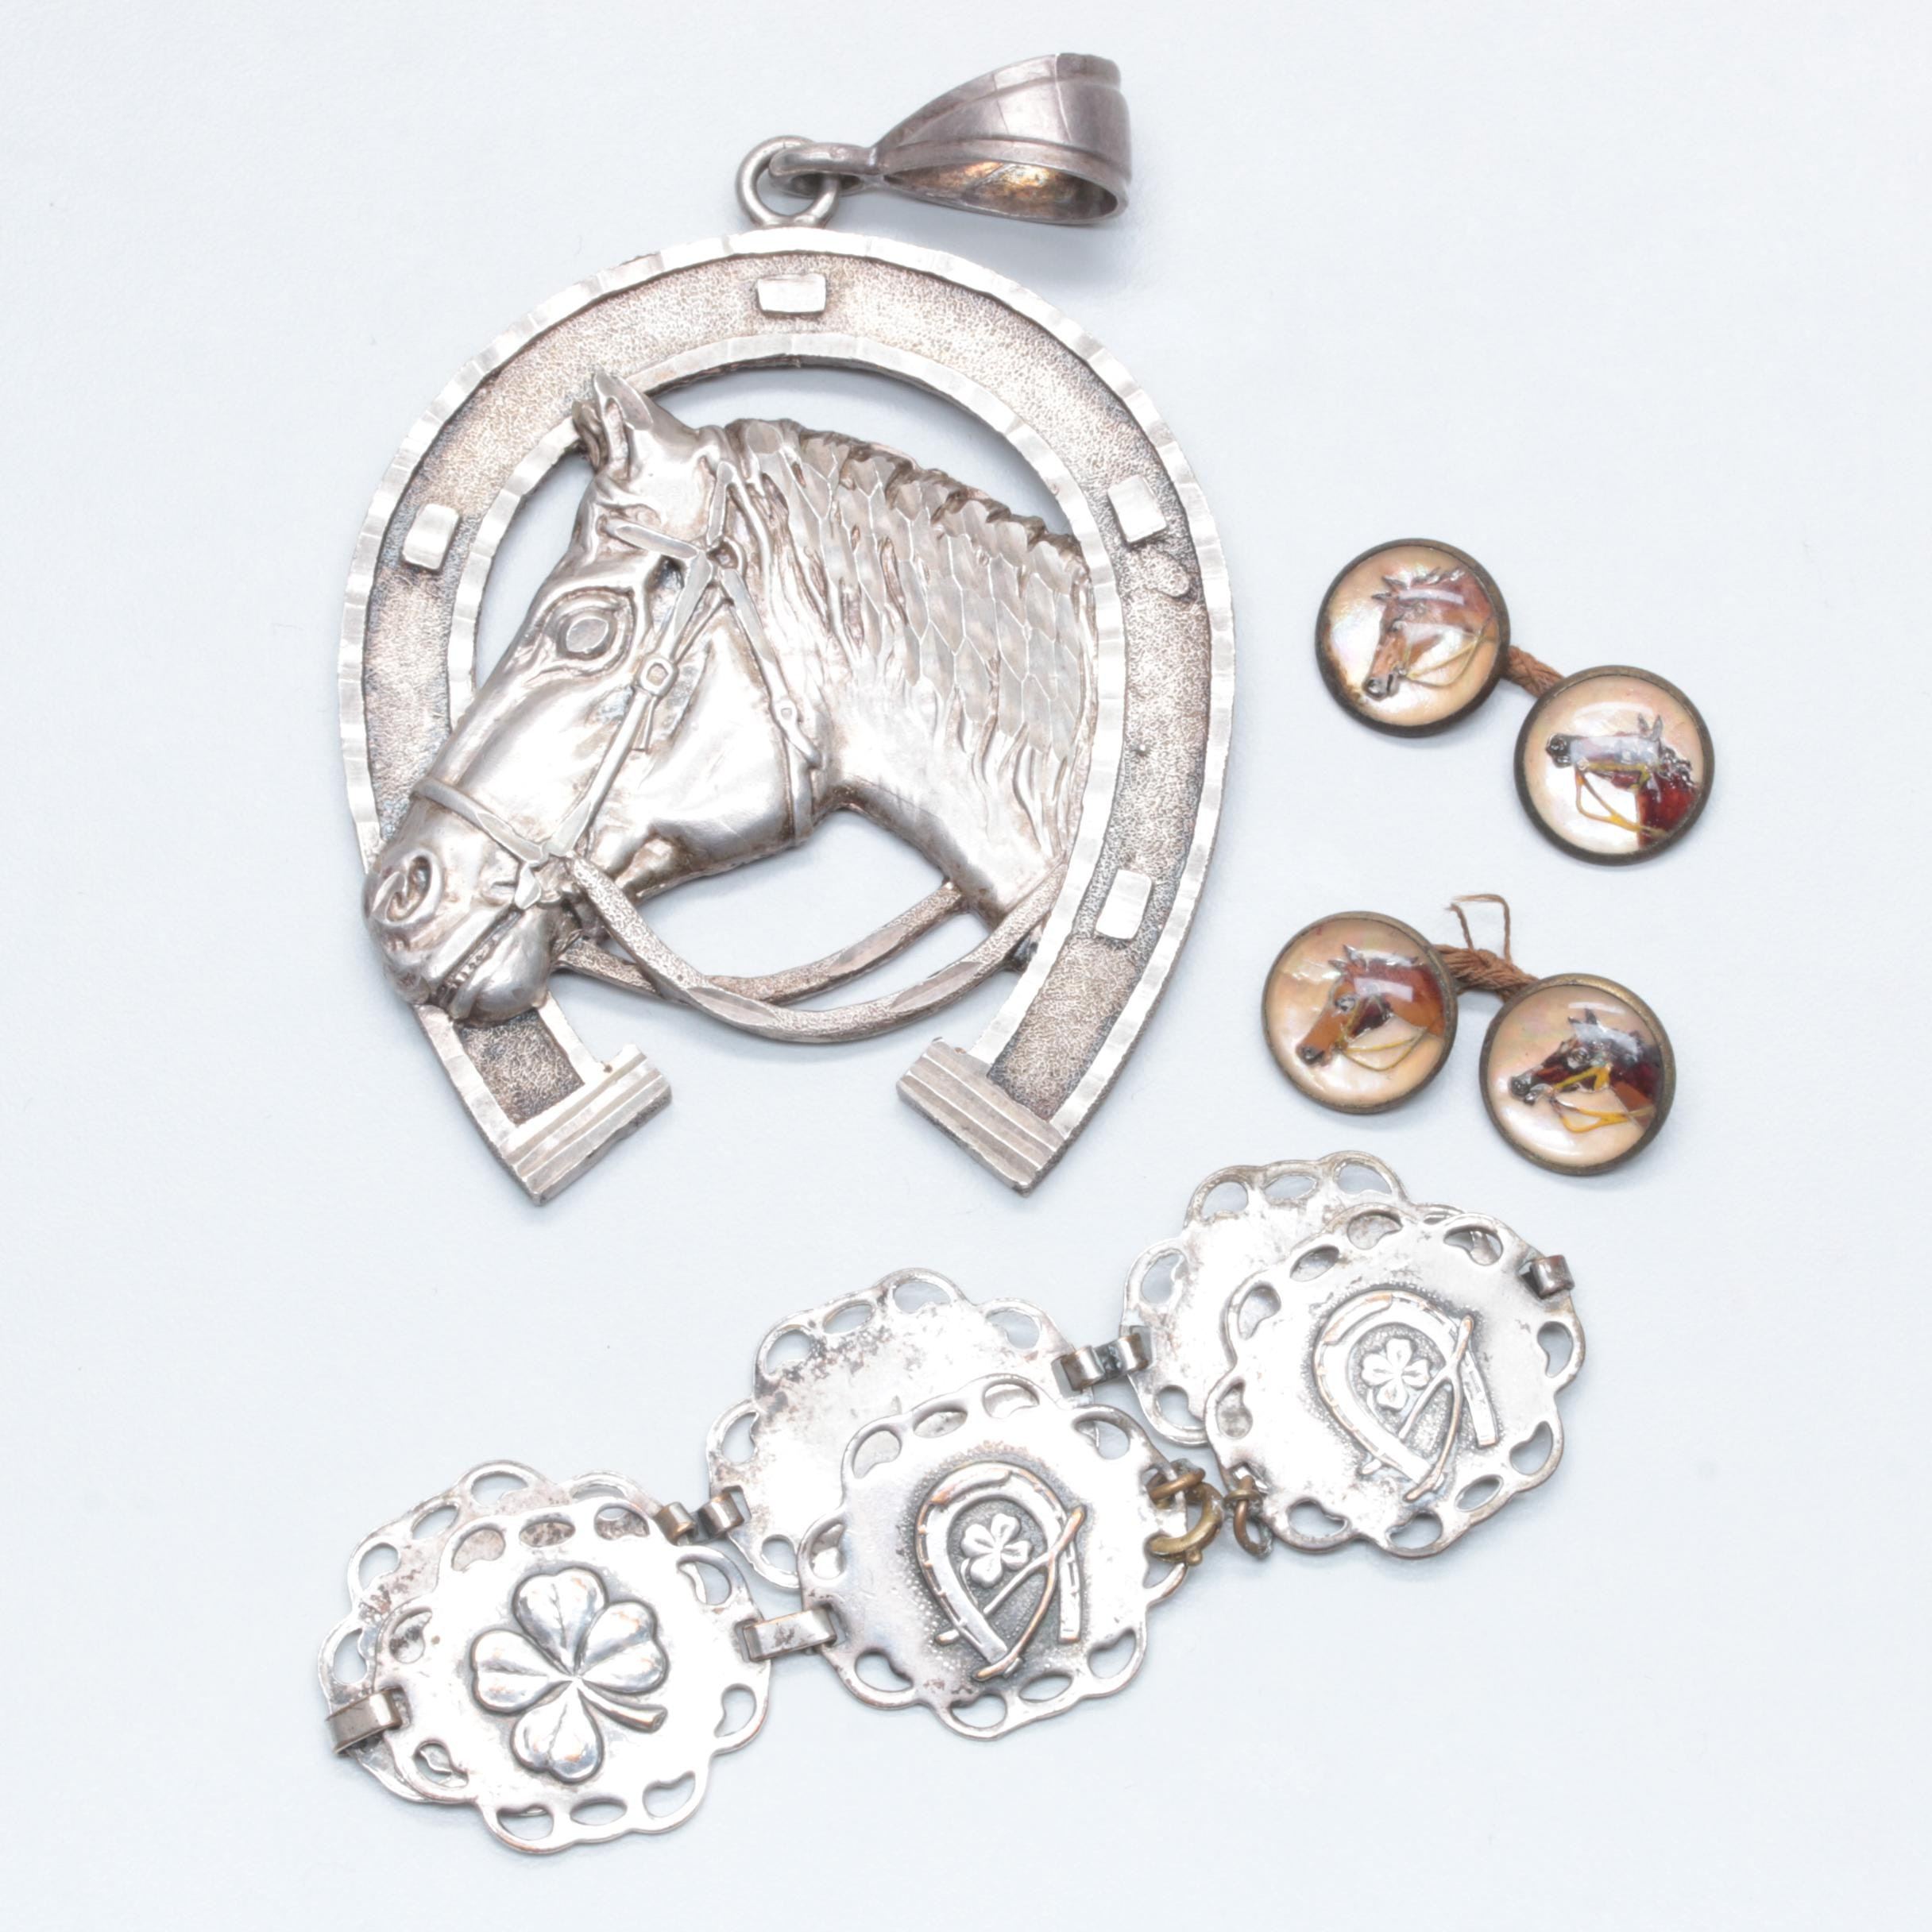 Sterling Silver and Costume Mother of Pearl and Resin Horse-Themed Jewelry